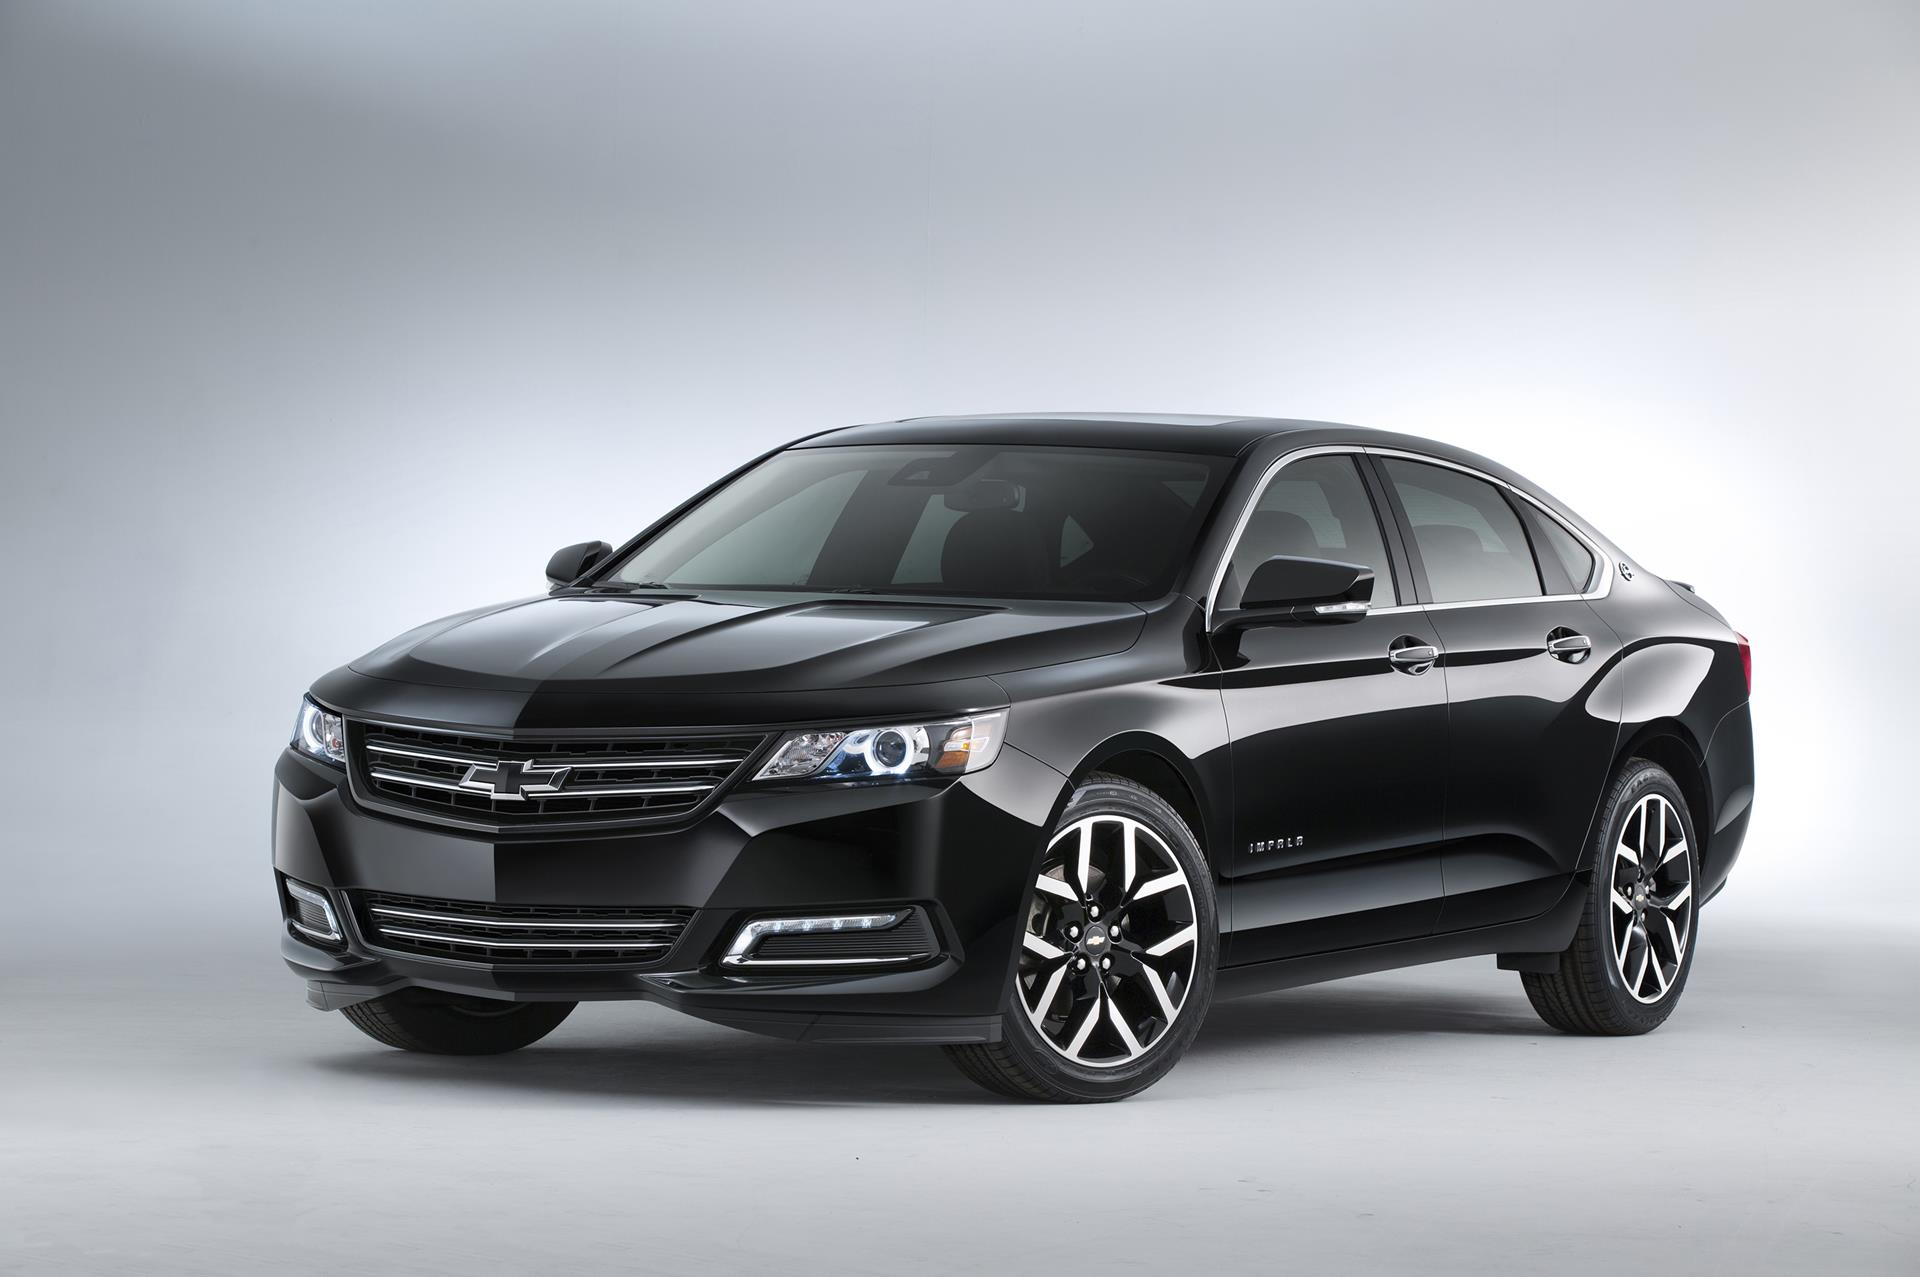 2014 Chevrolet Impala Blackout Concept News And Information 1957 Chevy Ss Research Pricing